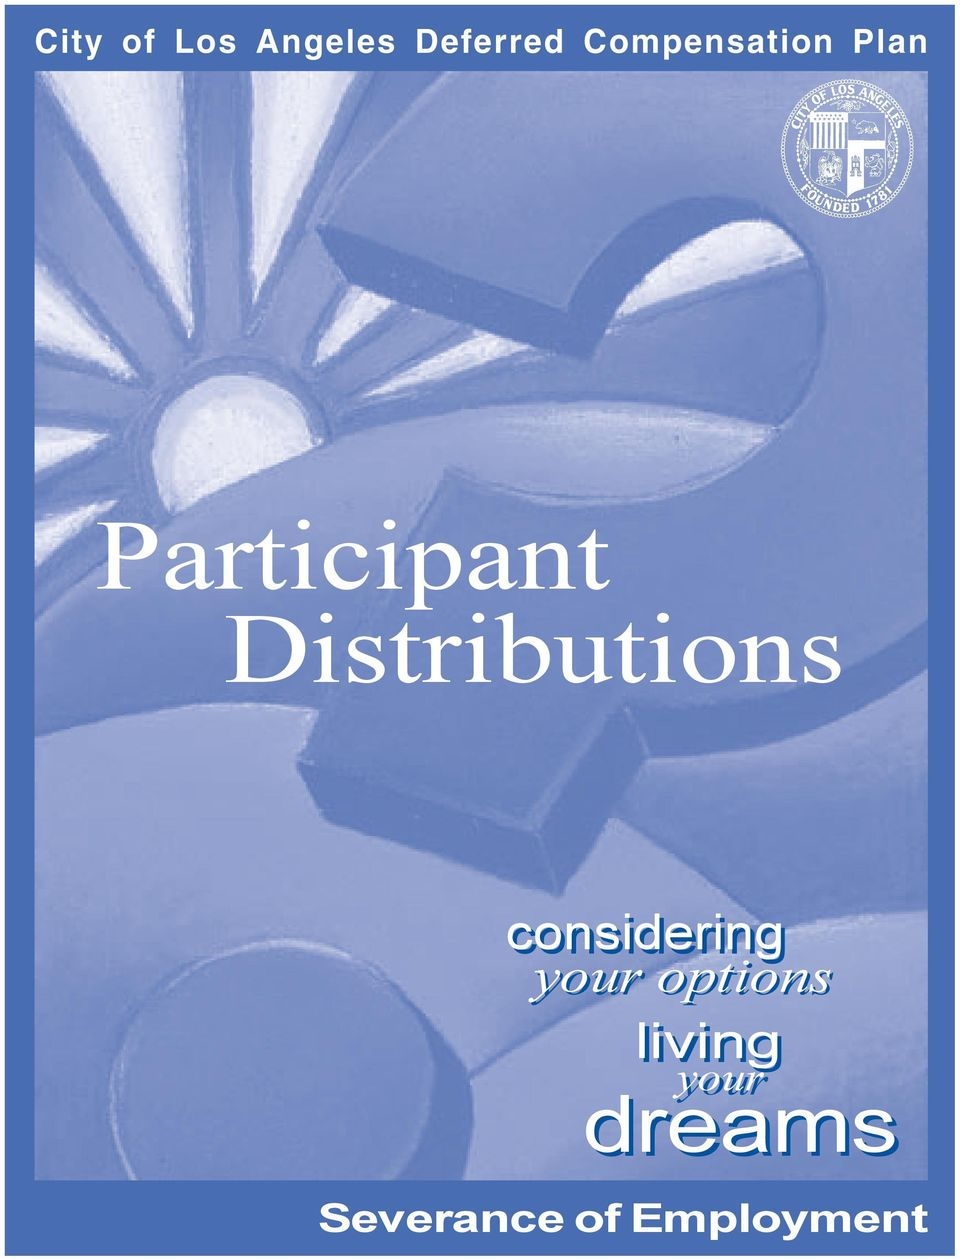 Distributions considering your